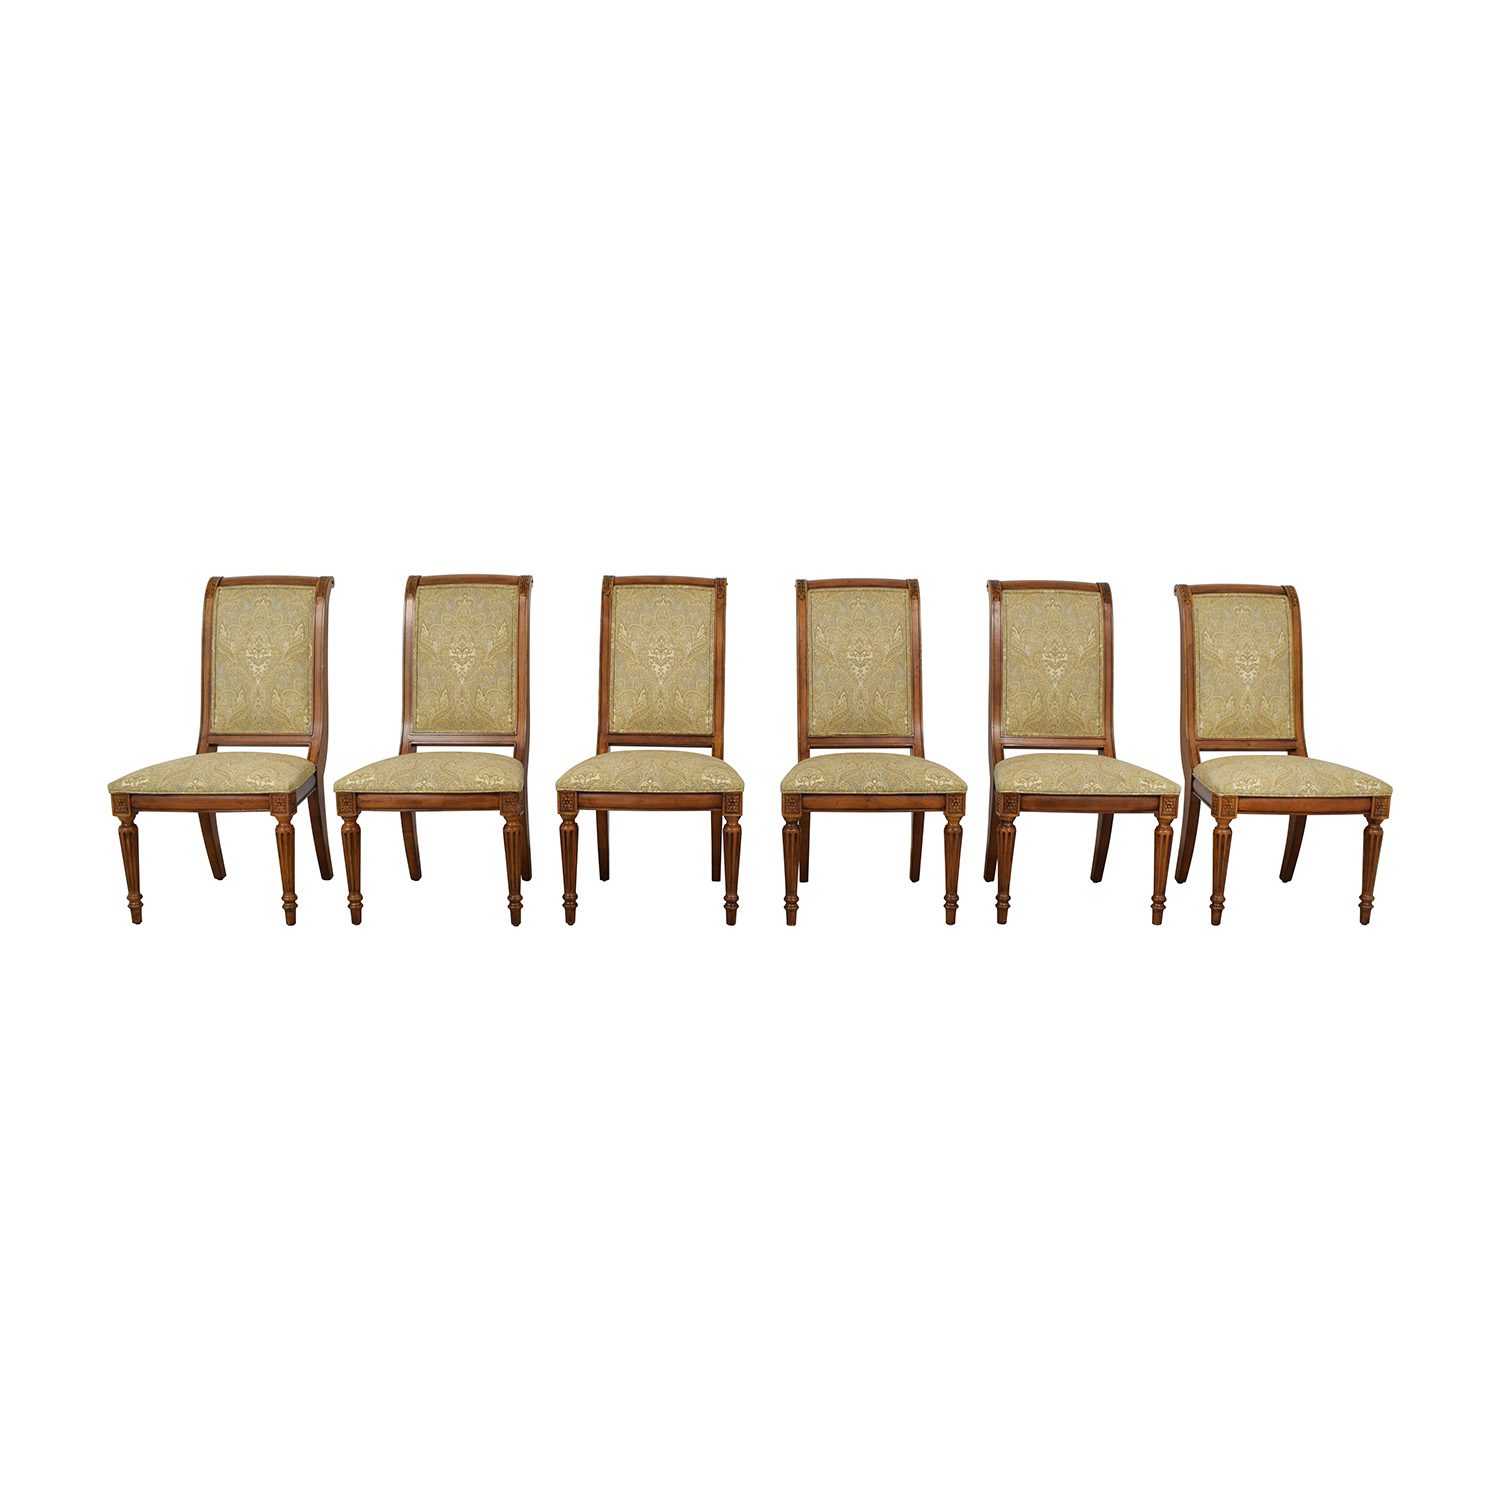 buy Ethan Allen Adison Side Chairs Ethan Allen Chairs